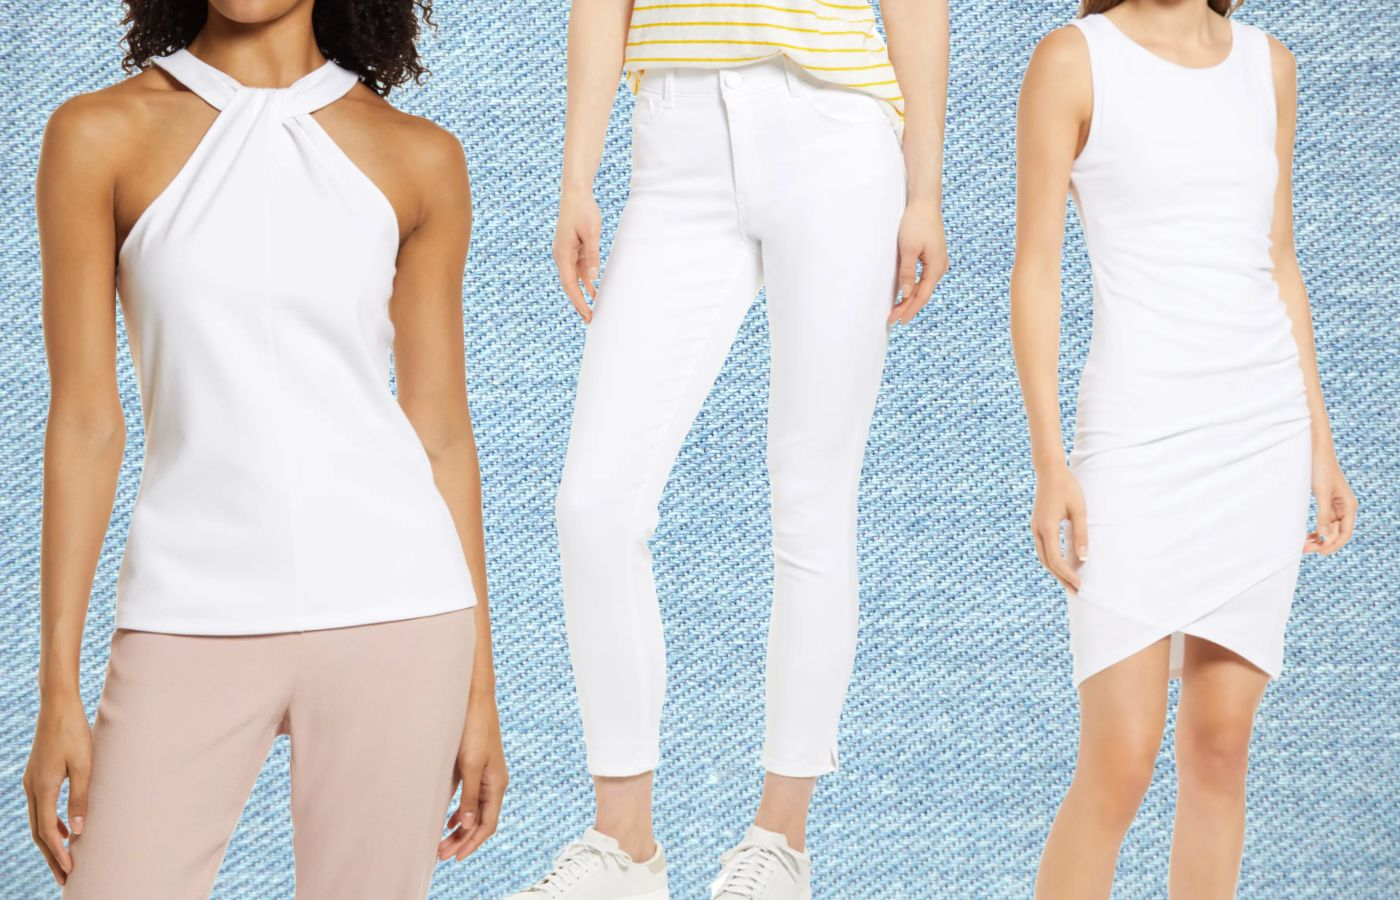 5 white wardrobe staples from Nordstrom you need for all your summer activities